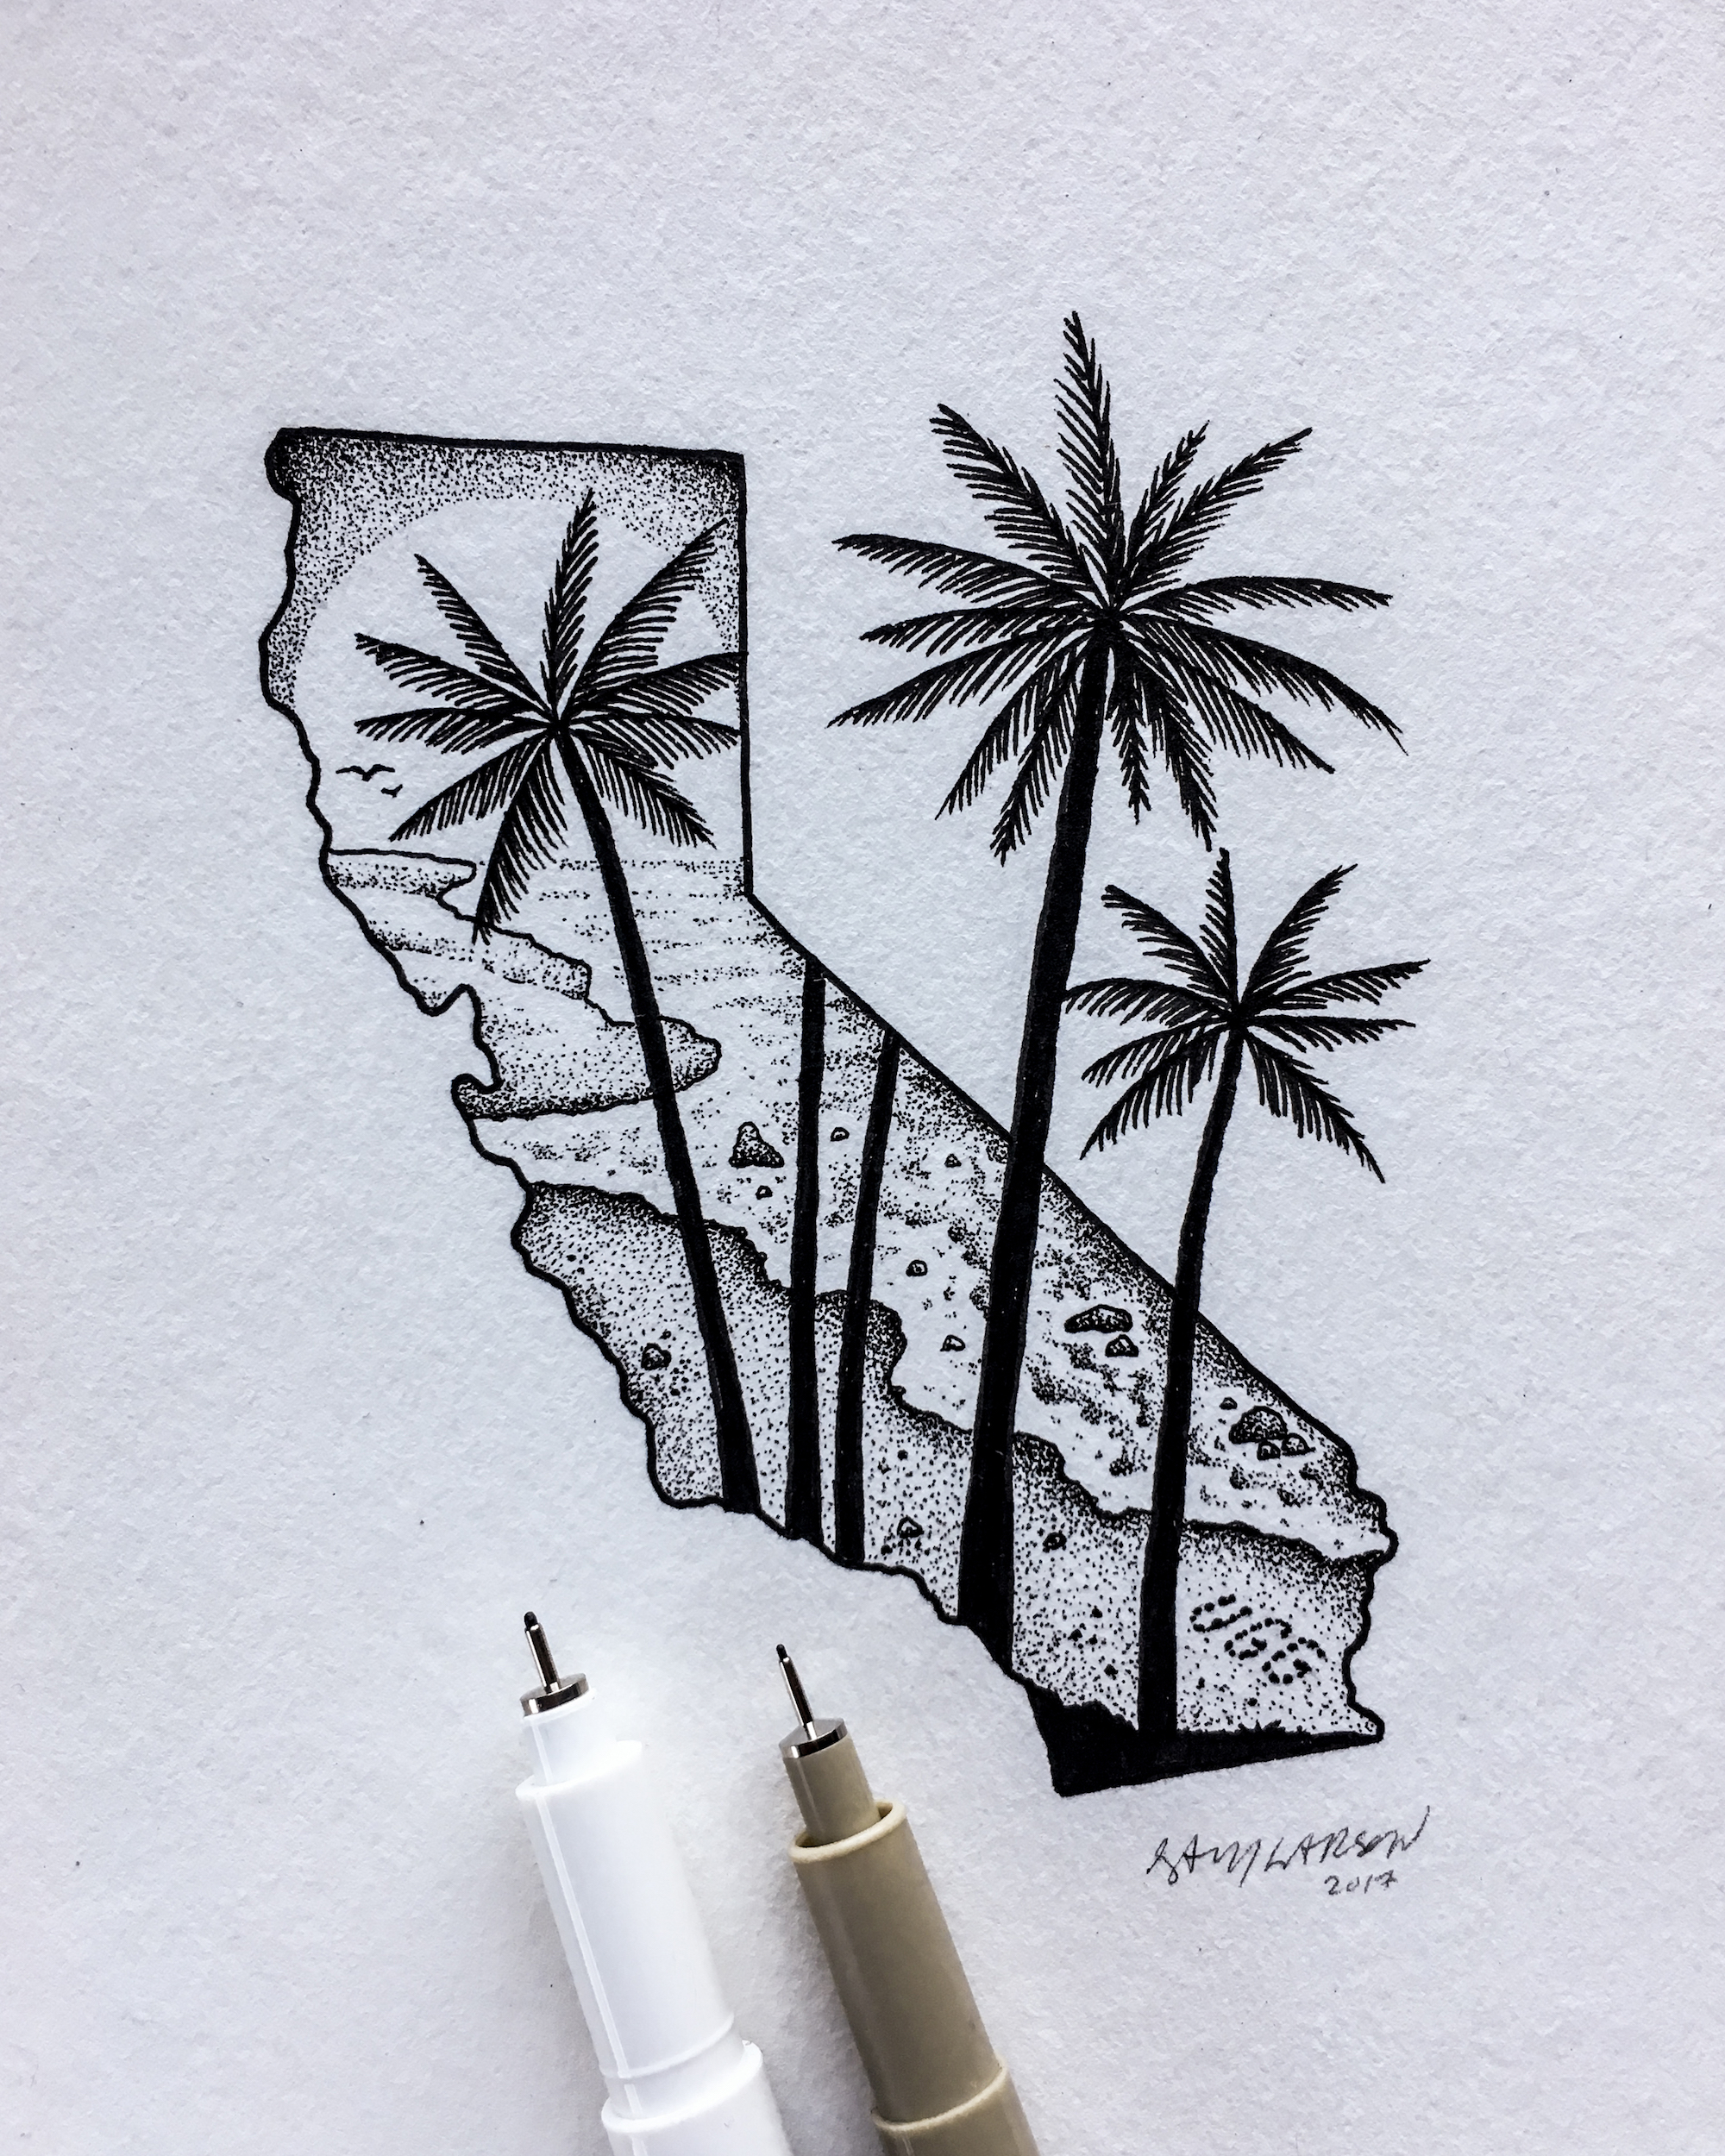 An illustration of California by Sam Larson